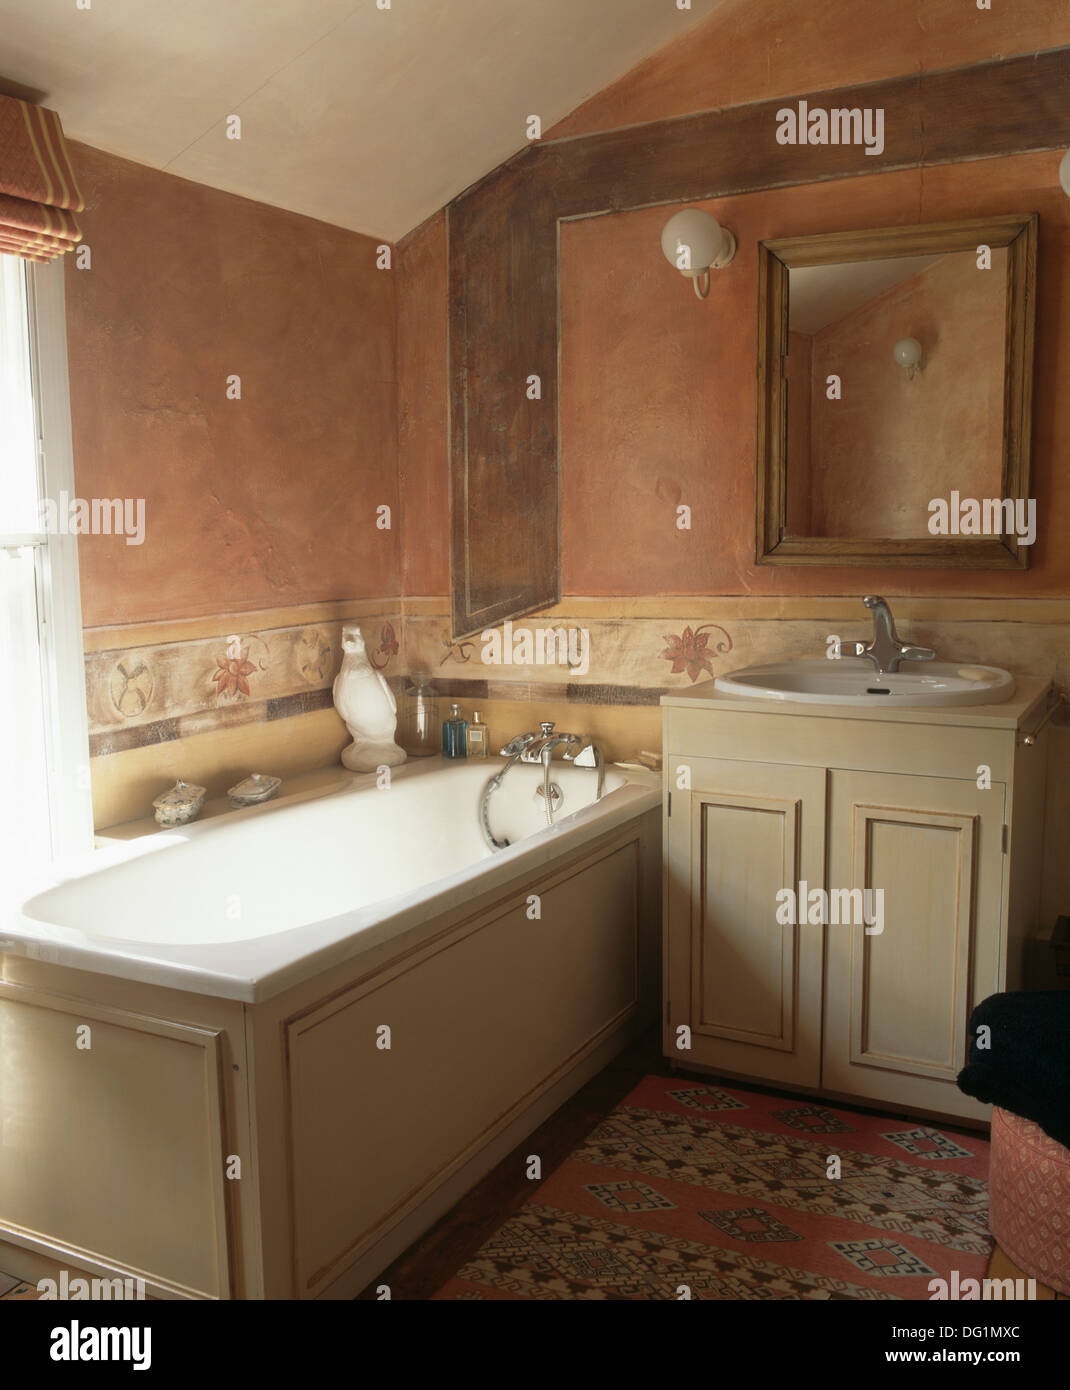 Tuscan Inspired Bathroom With Terracotta Color Washed Walls And Cream Stock Photo Royalty Free